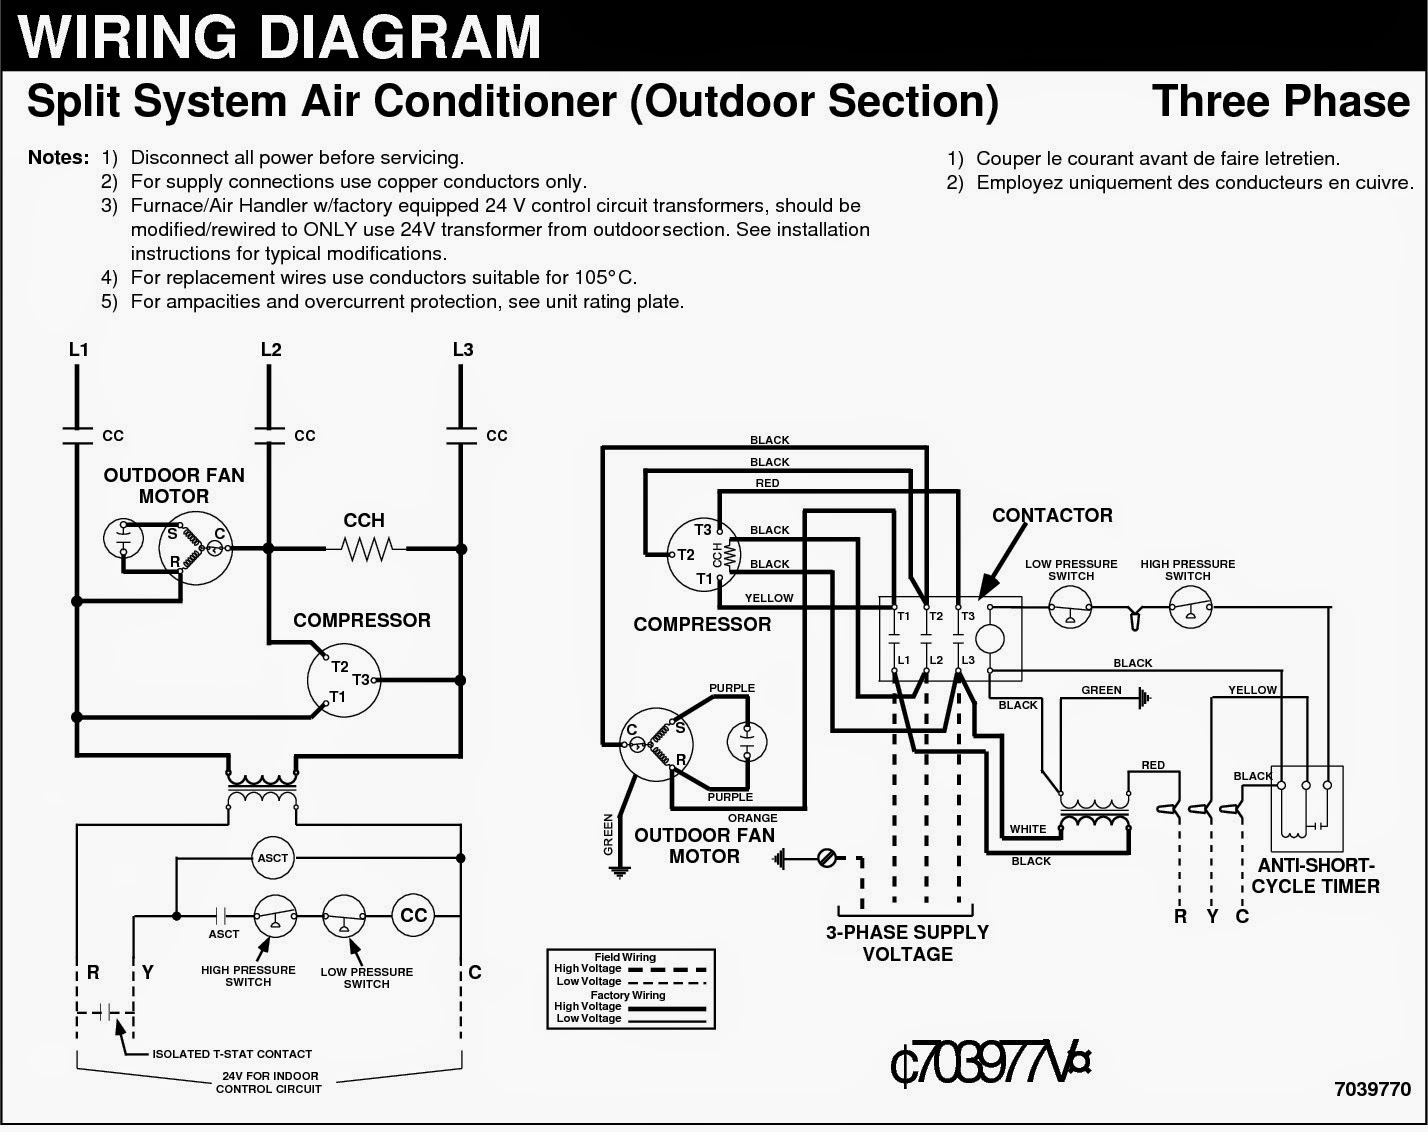 3+phase ac compressor wiring diagram bitzer compressor wiring diagram compressor wiring diagram single phase at arjmand.co